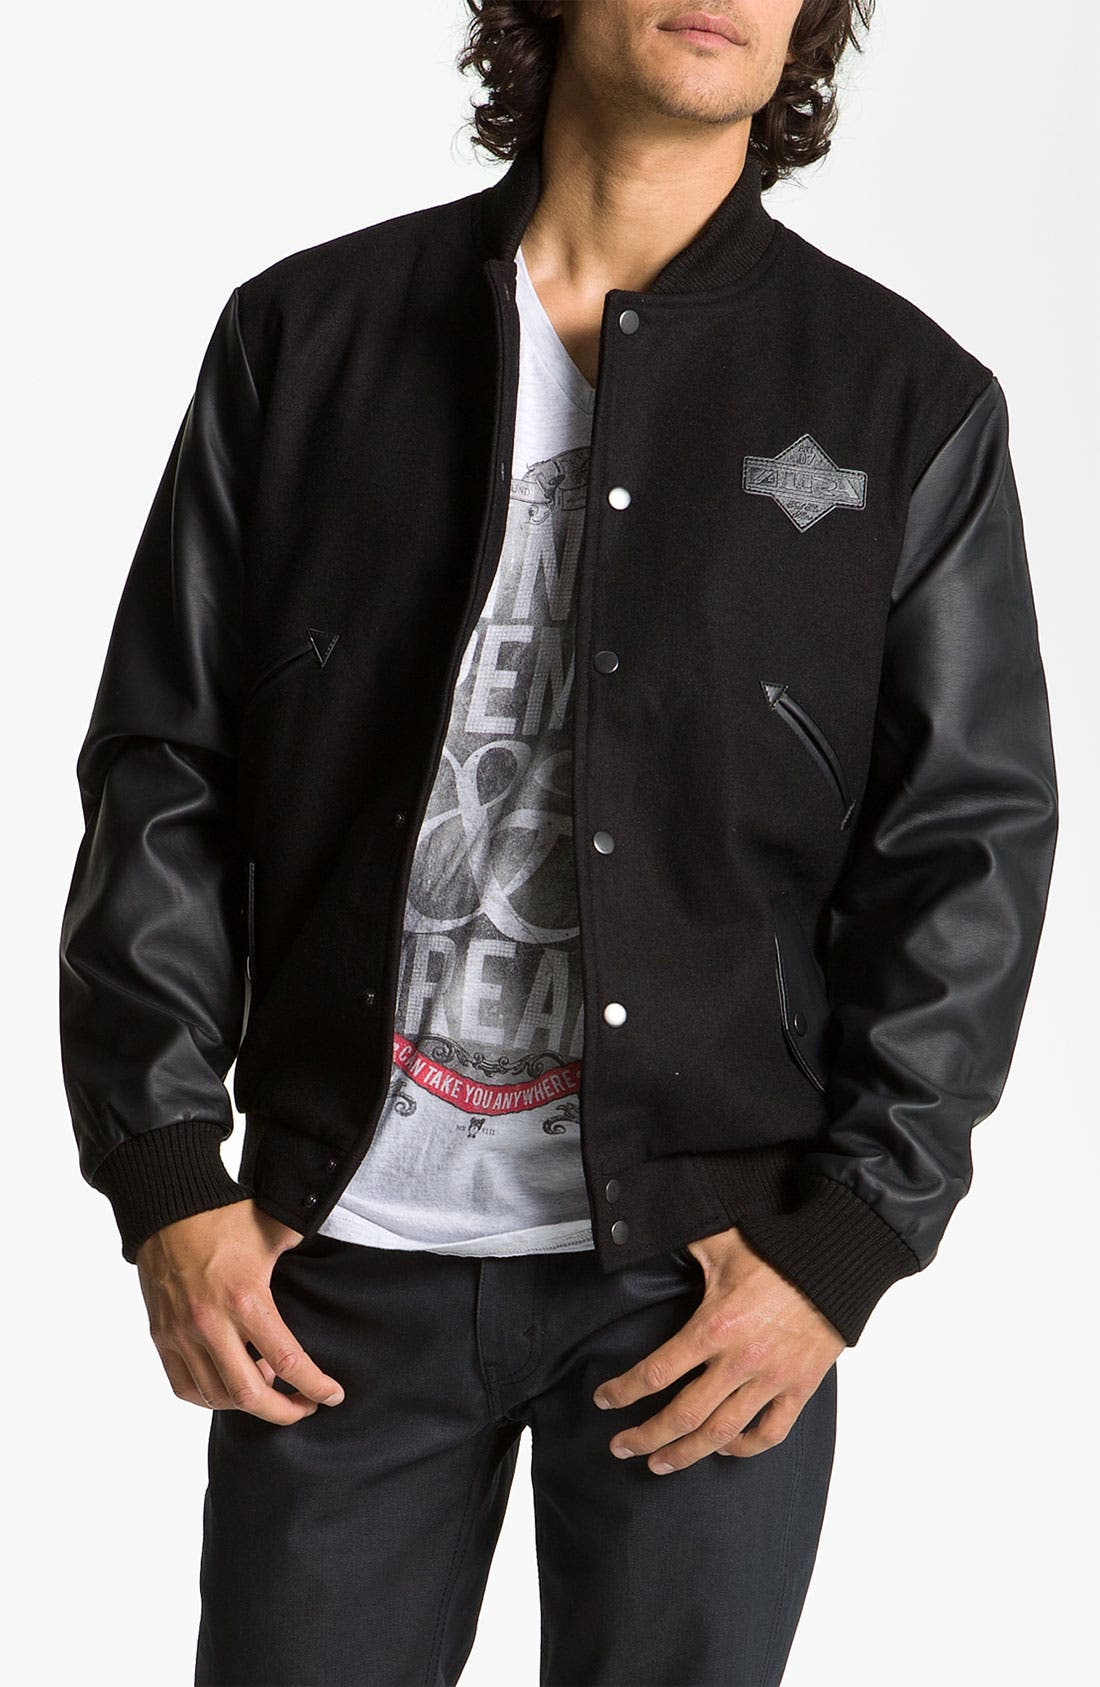 Alternate Image 1 Selected - Lira Clothing Wool Blend Varsity Jacket